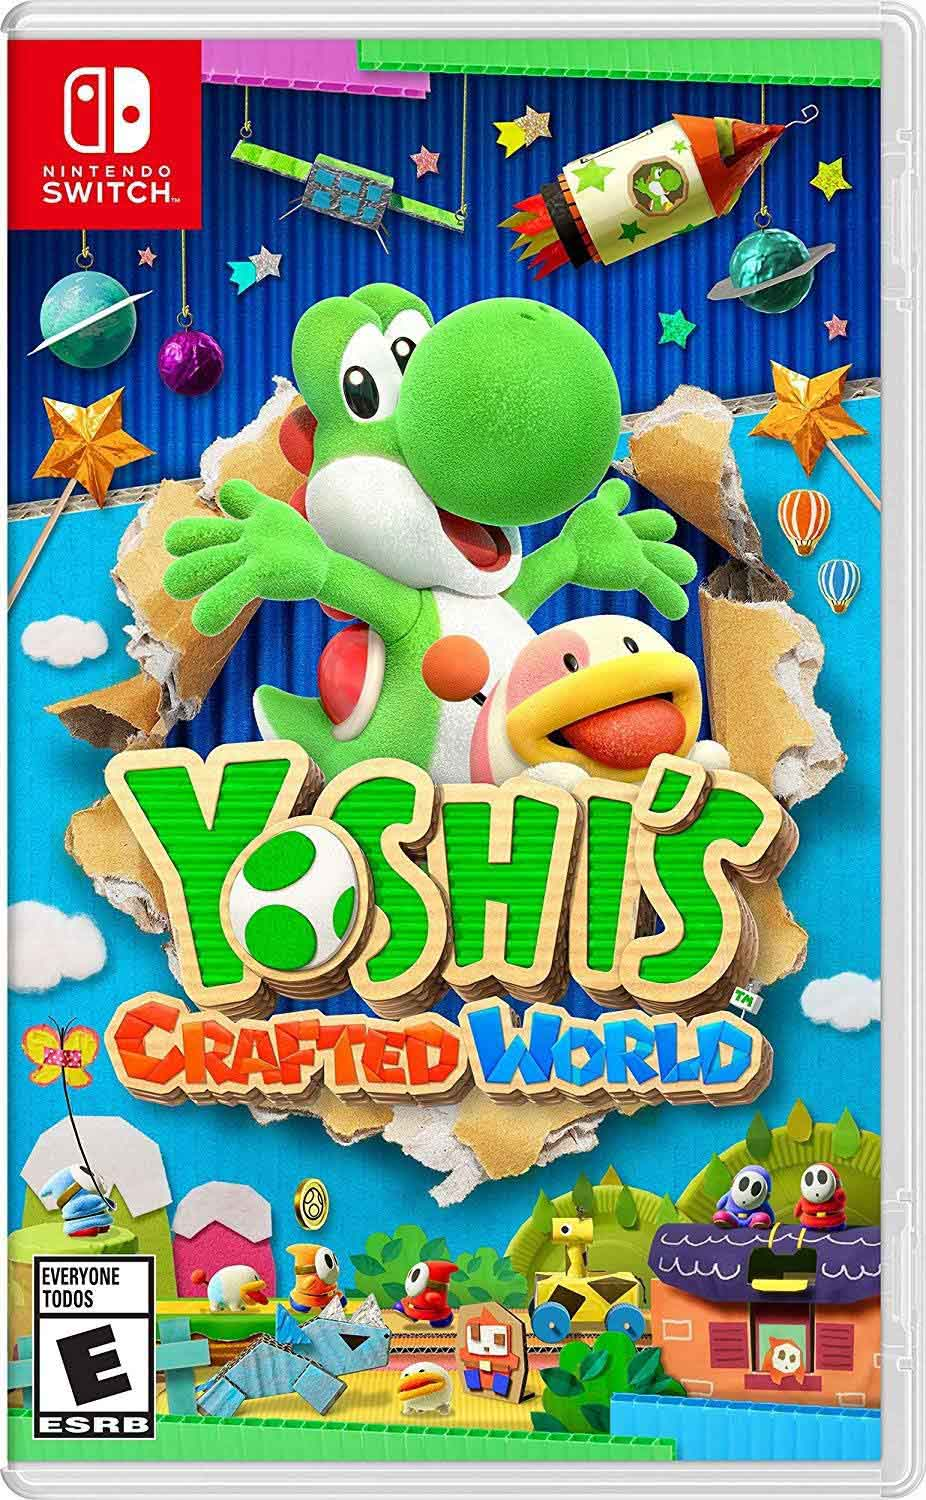 Cover of Yoshi's Crafted World game